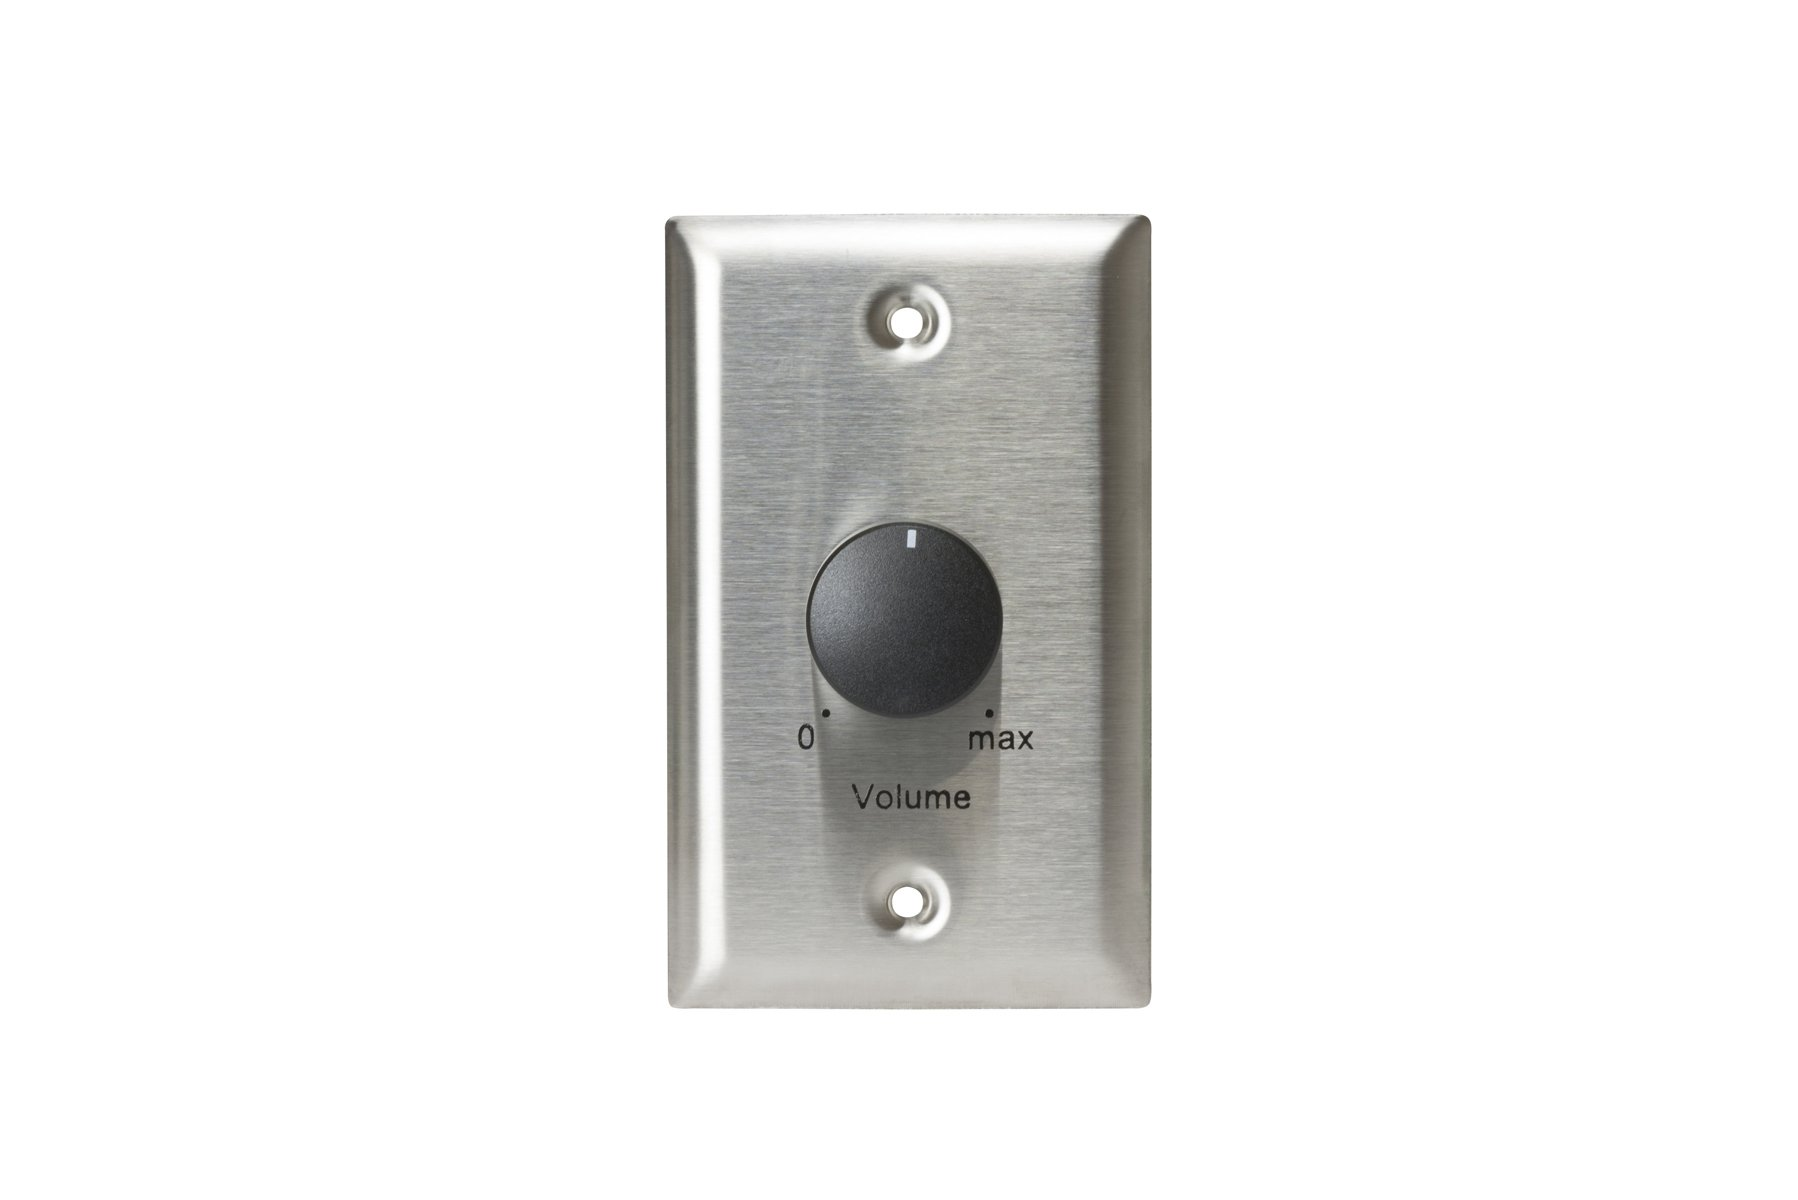 25W Stainless Steel Single-Gang Volume Control Attenuator Wall Plate